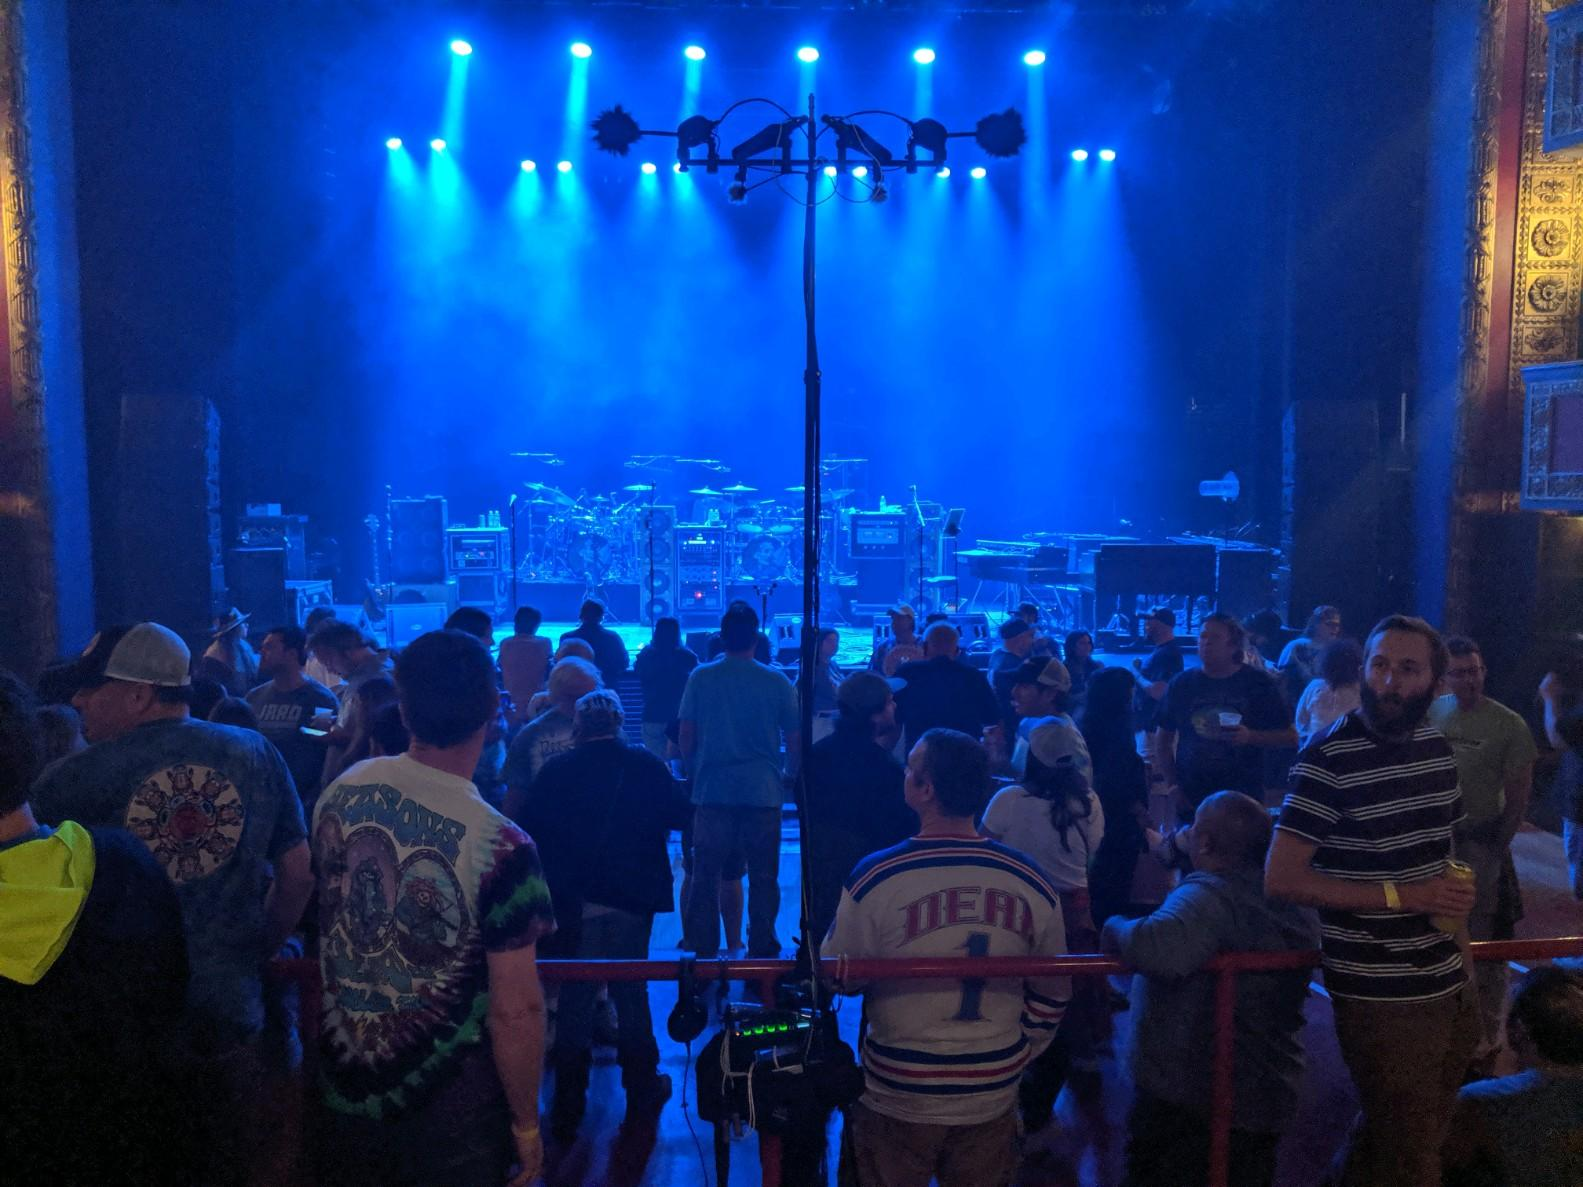 DarkStarOrchestra2019-09-26VicTheaterChicagoIL (2).jpg